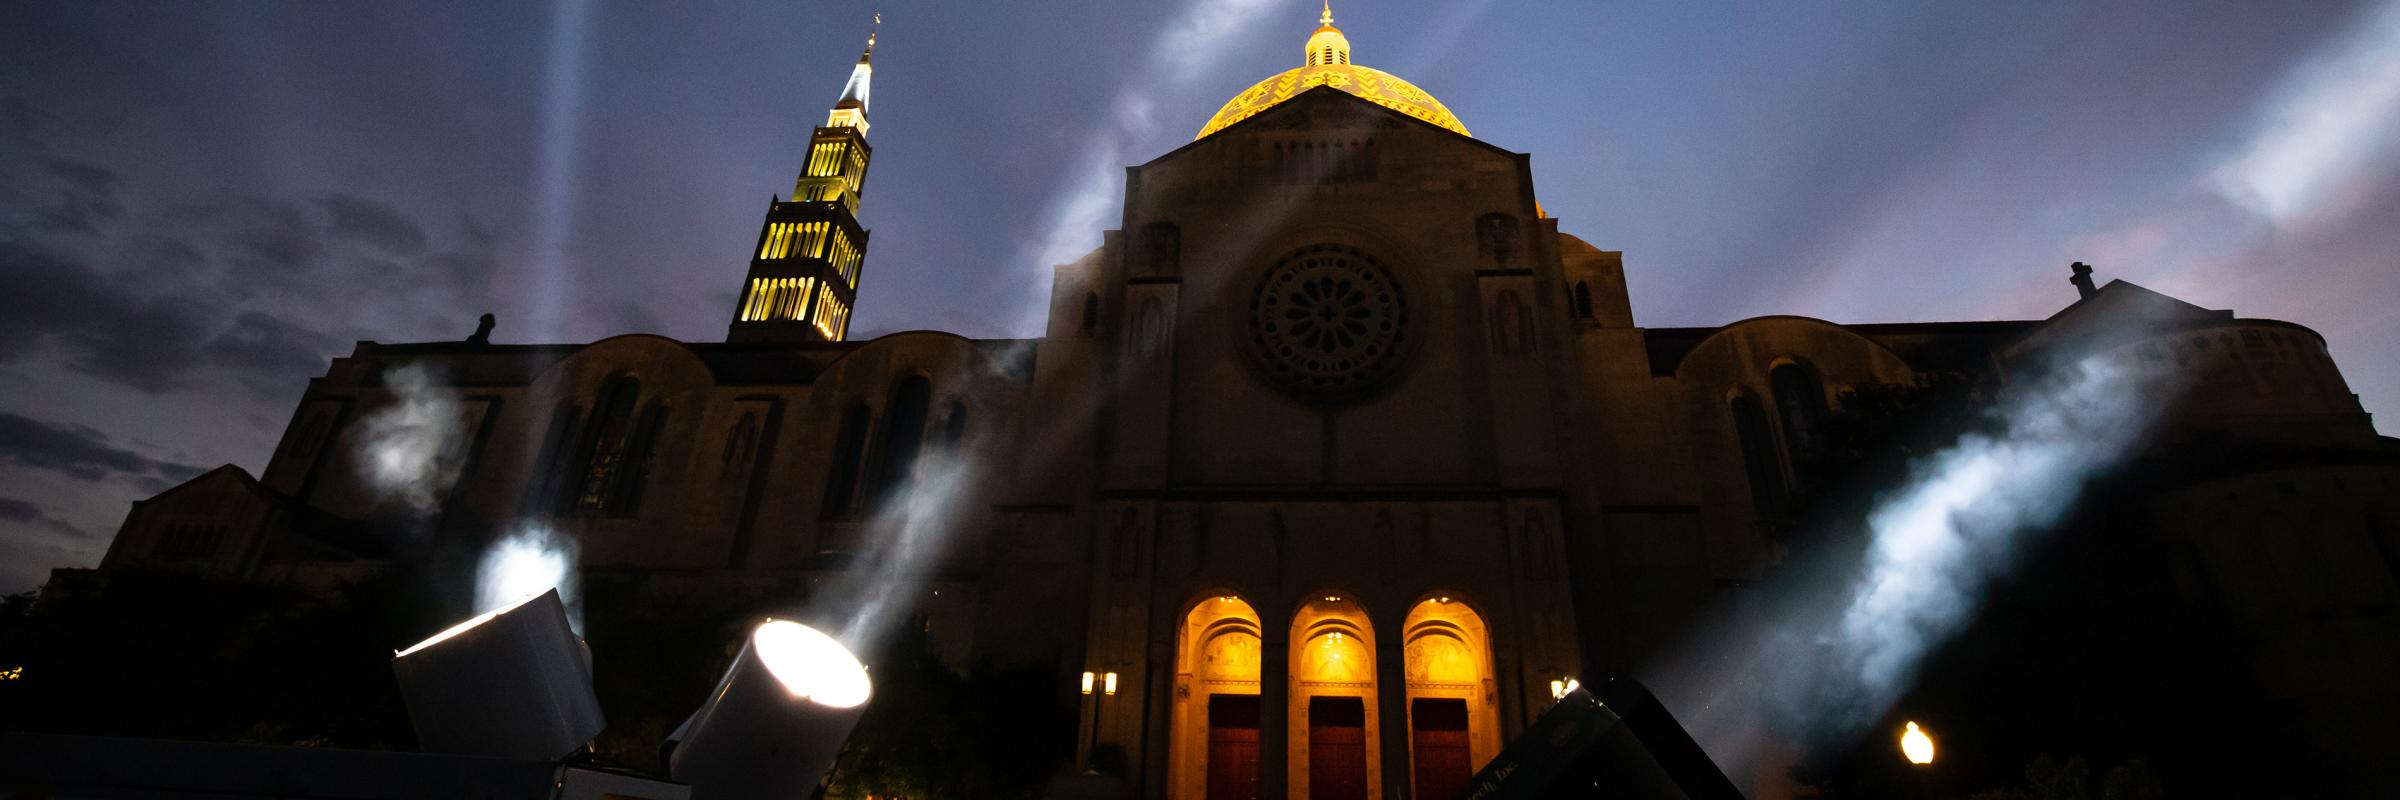 Spotlights by the Basilica